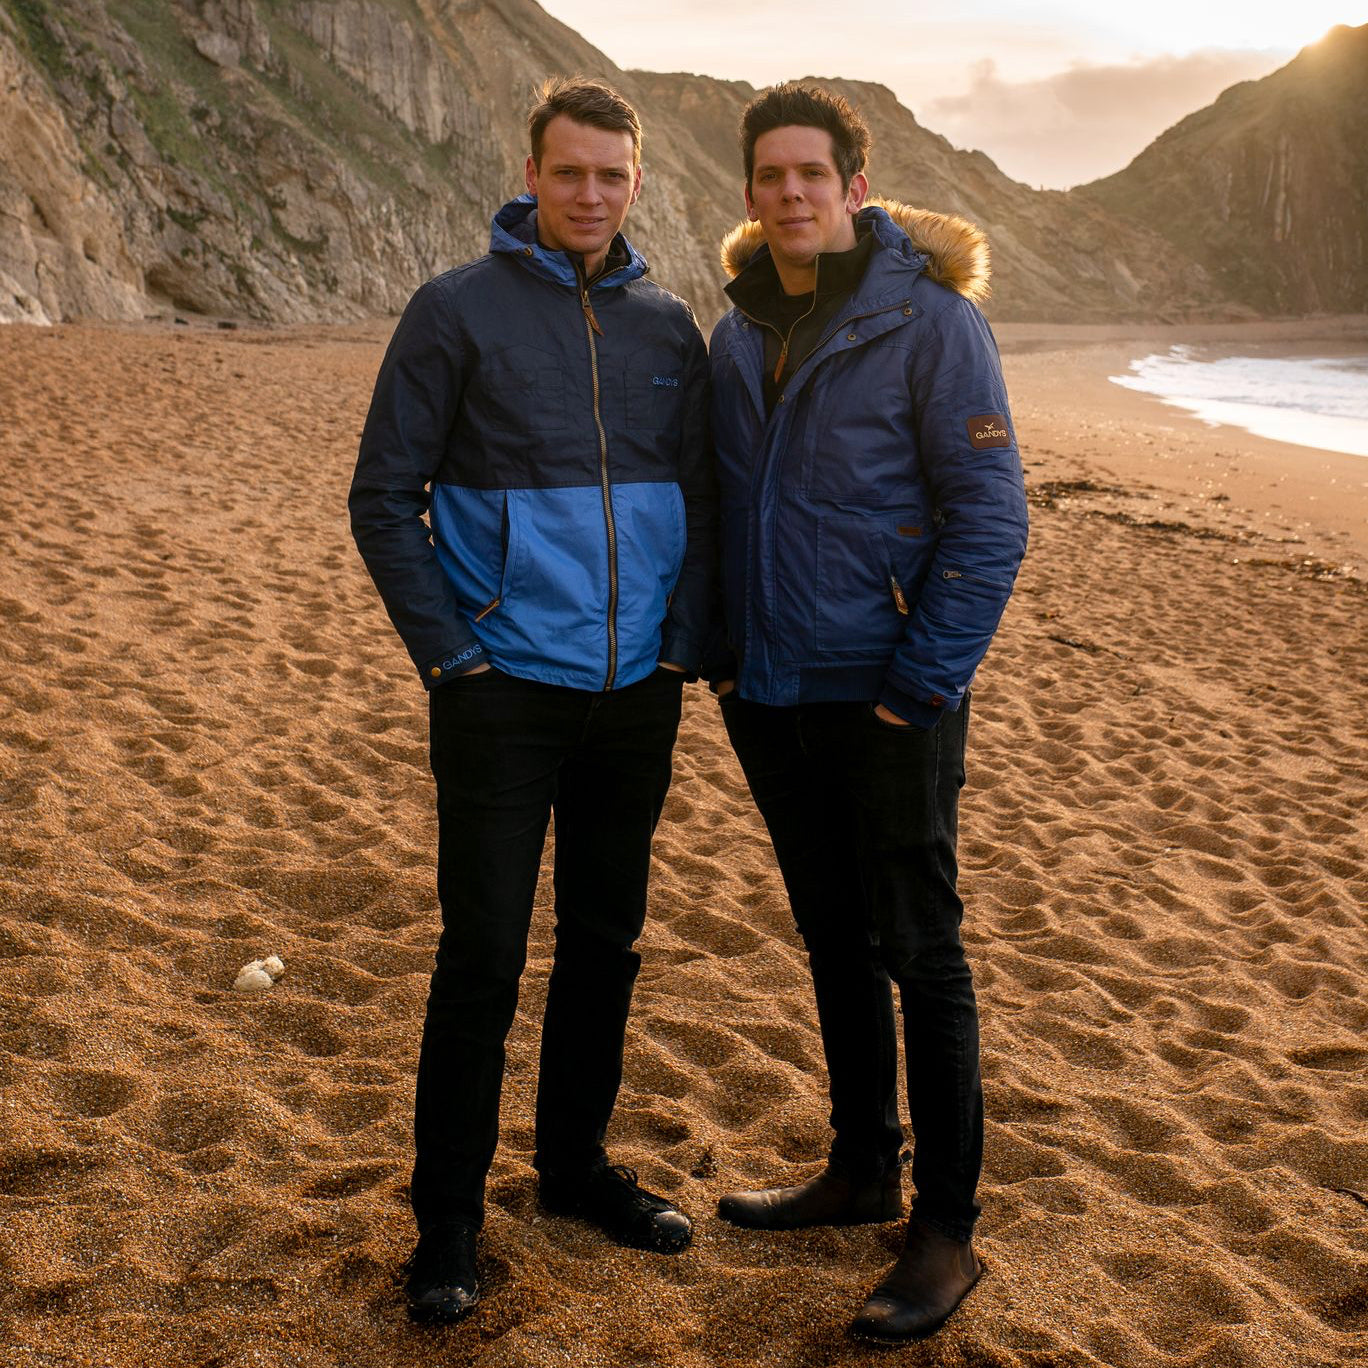 Rob and Paul Forkan the founders of Gandys International on a beach backdropped by mountains.